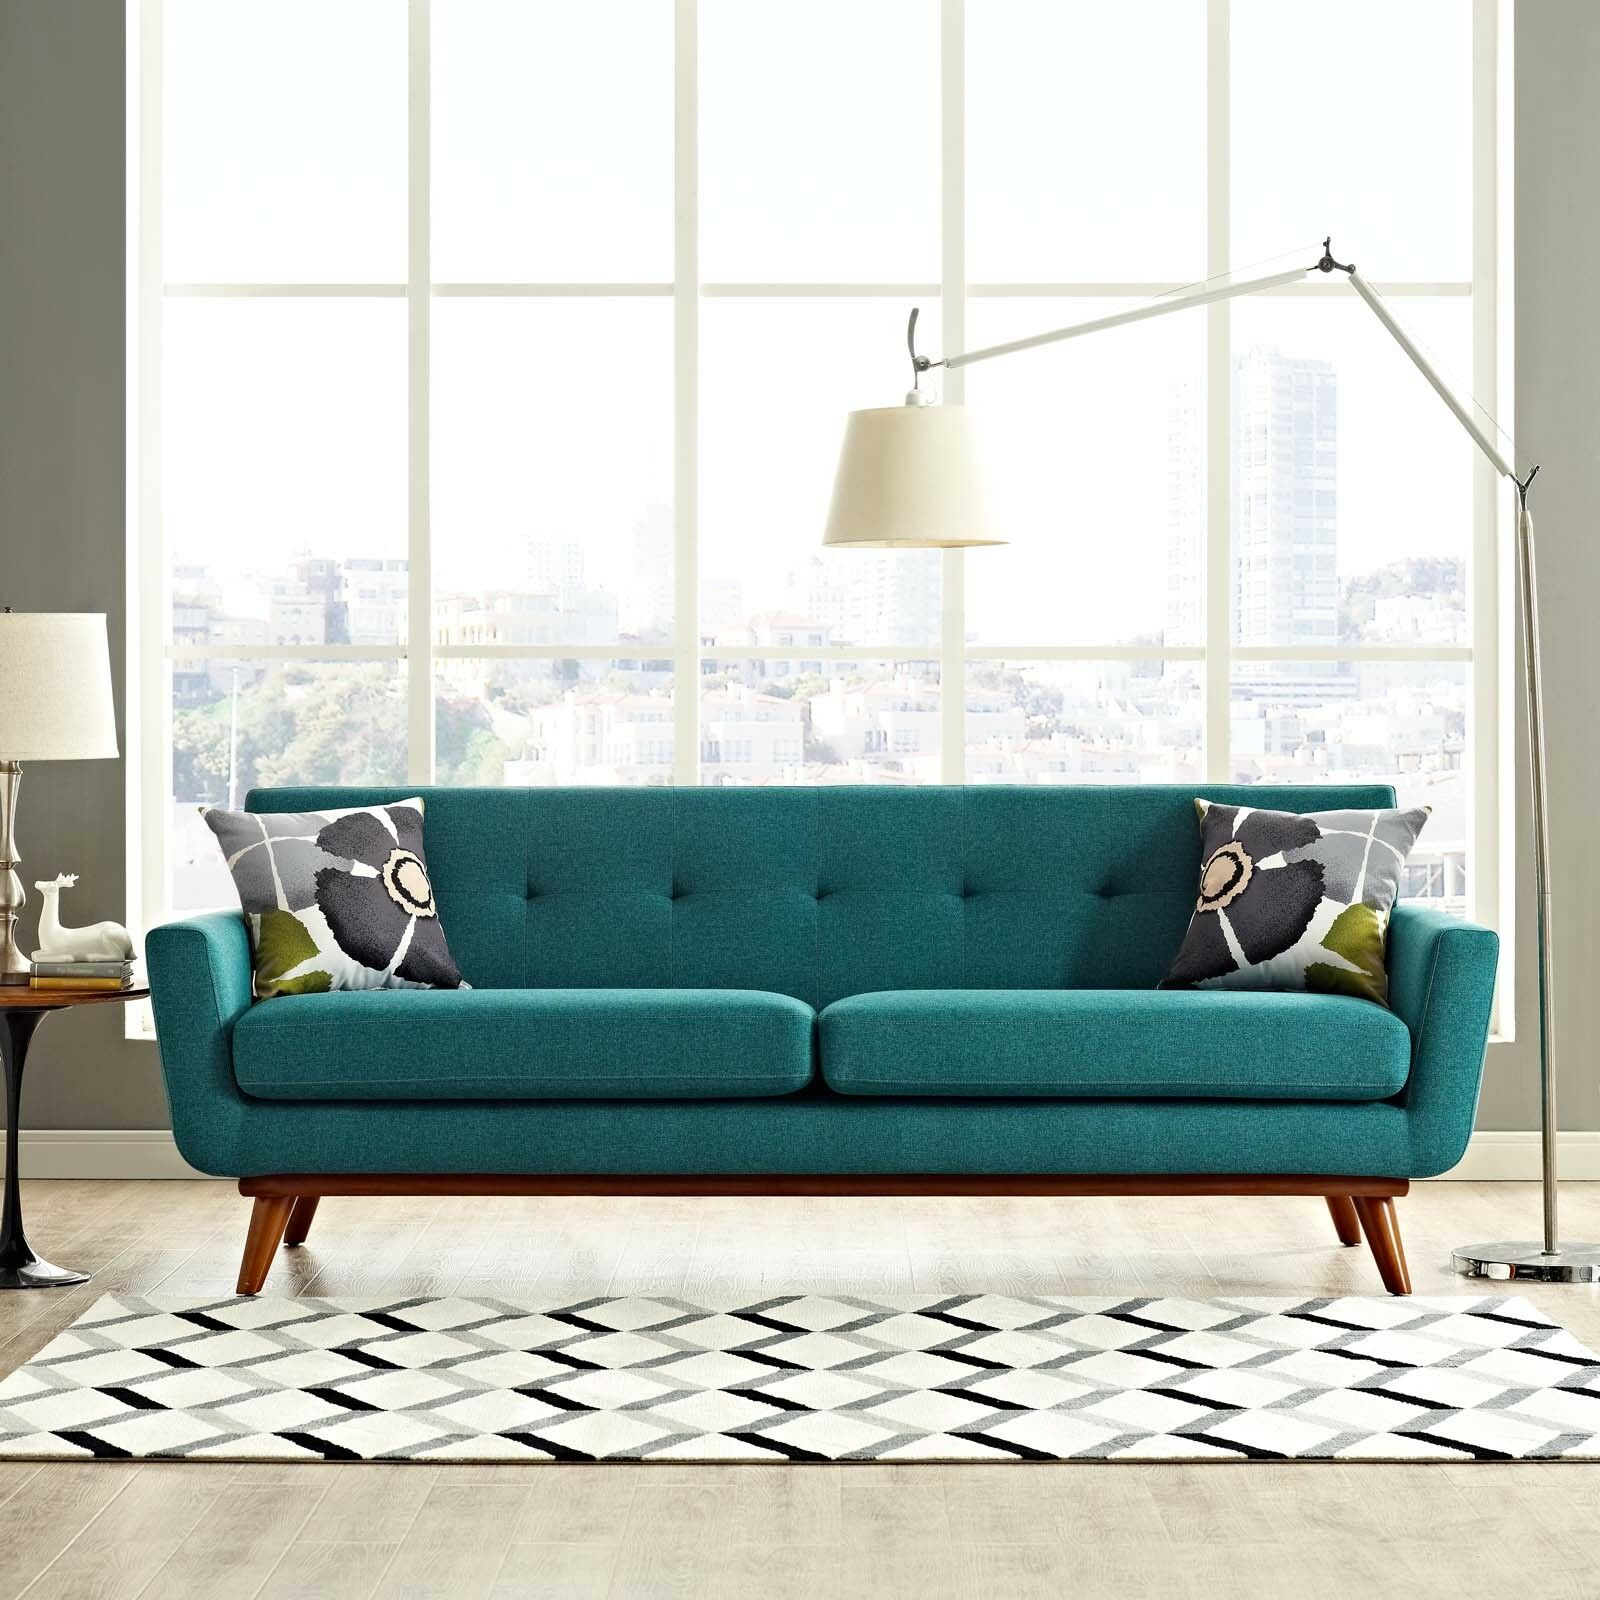 Details About Mid Century Modern Upholstered Fabric Living Room Sofa In Teal